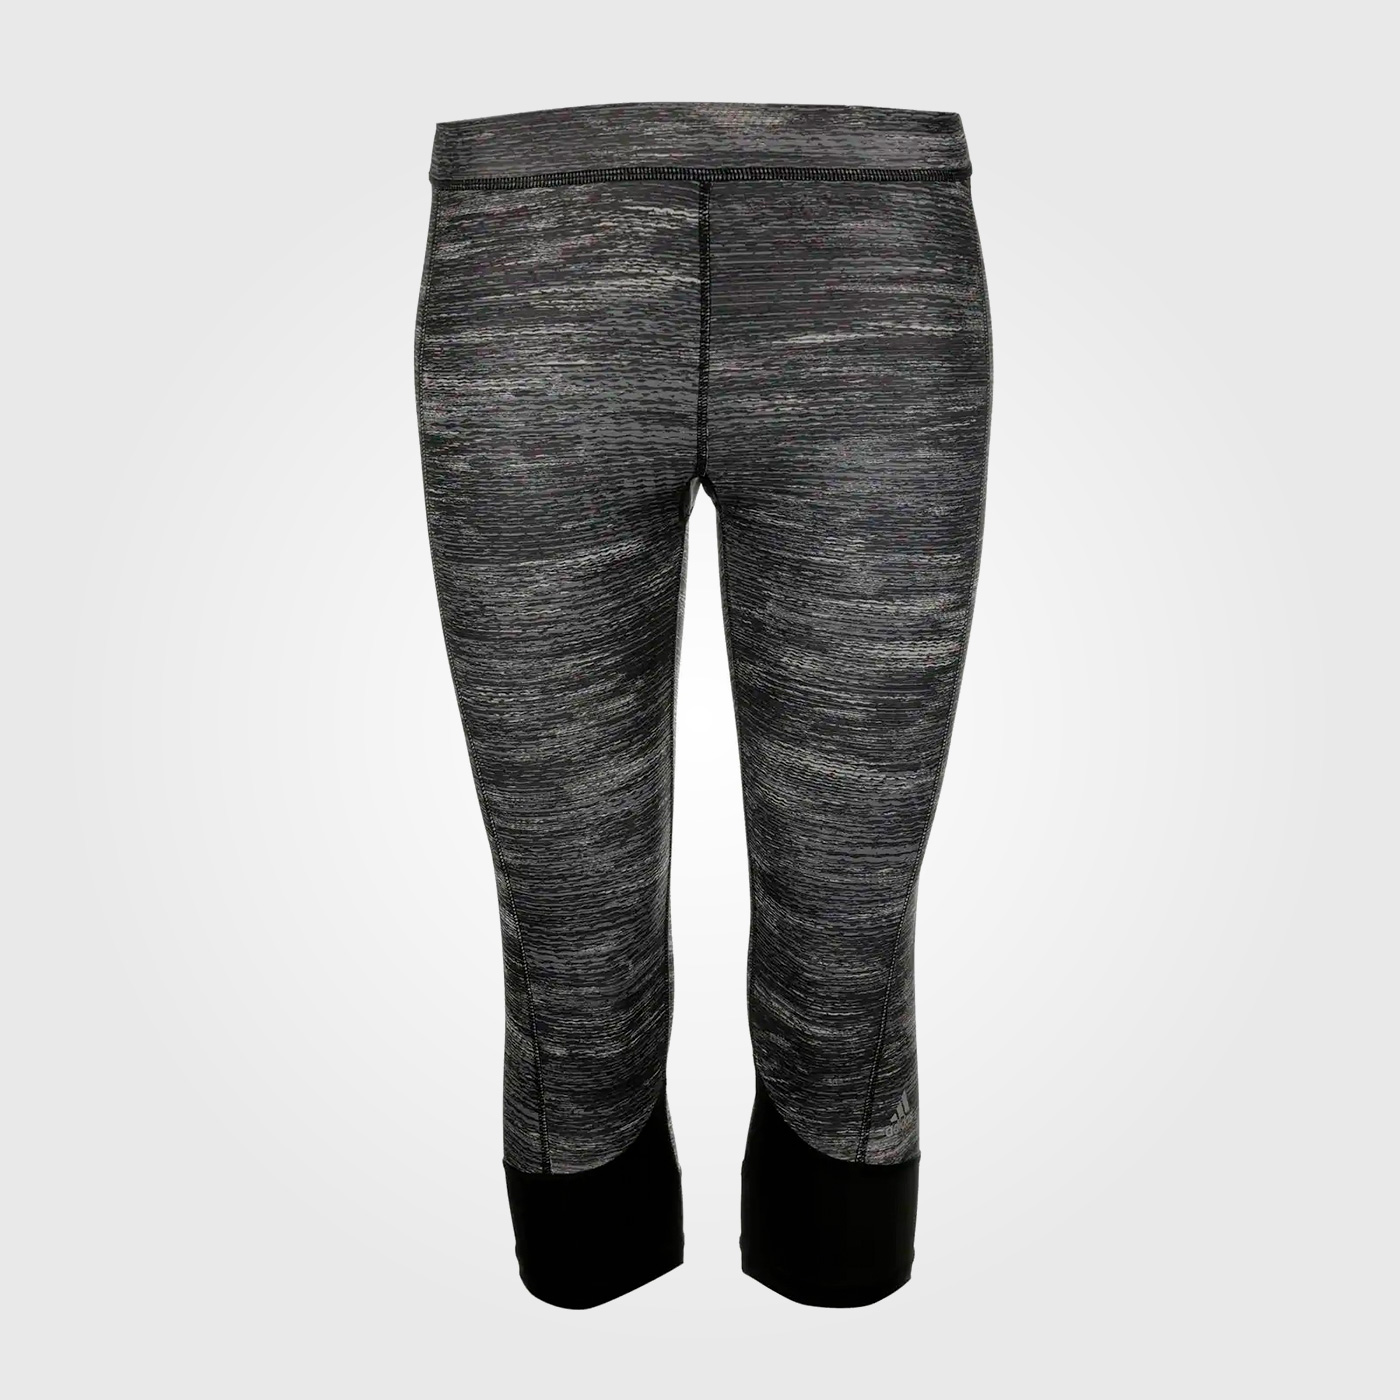 Спортивные штаны Adidas Tech Fit Capri Ladies Black Heather